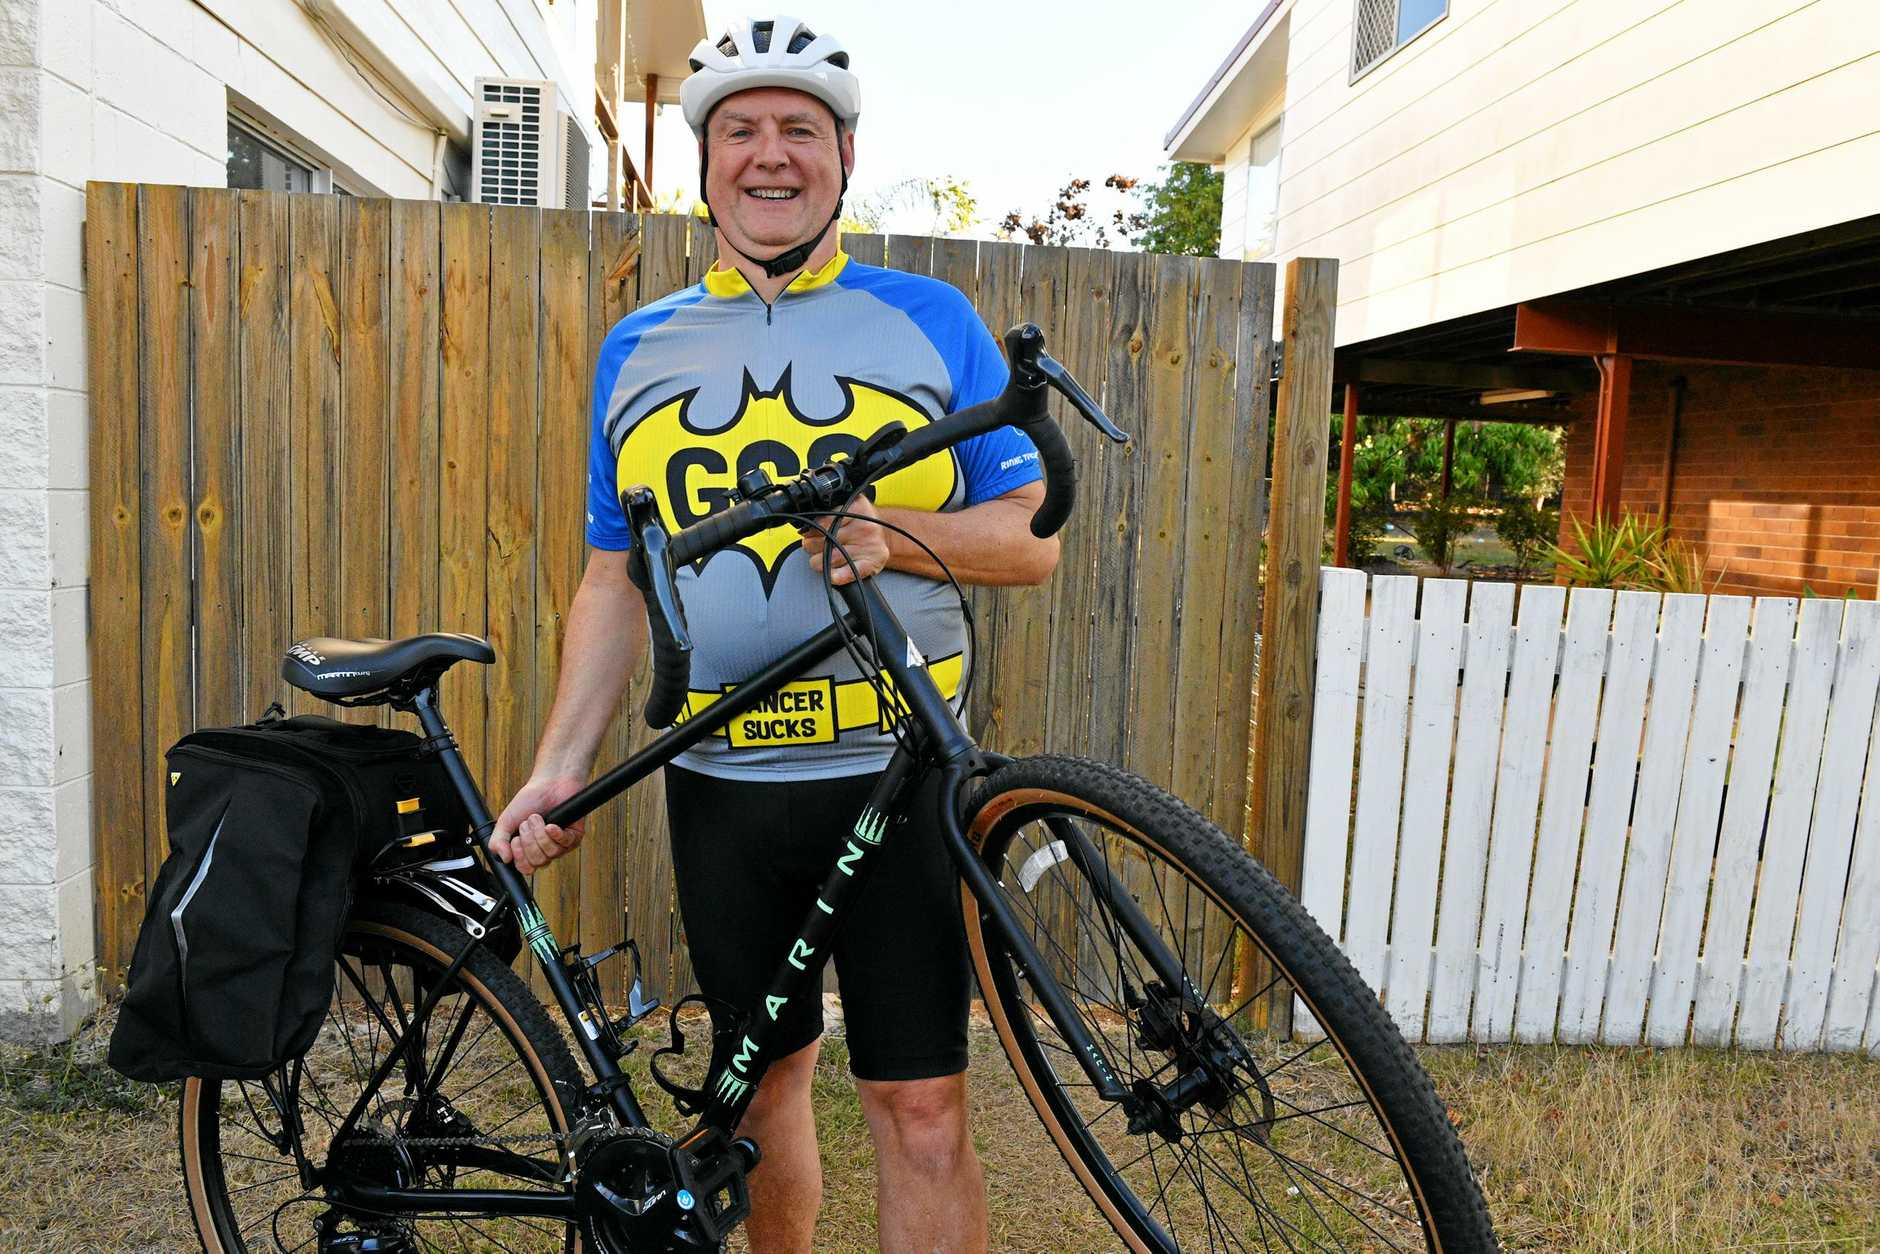 Steve Felix is getting ready for this year's Great Cycle Challenge which raises money for children's cancer research.